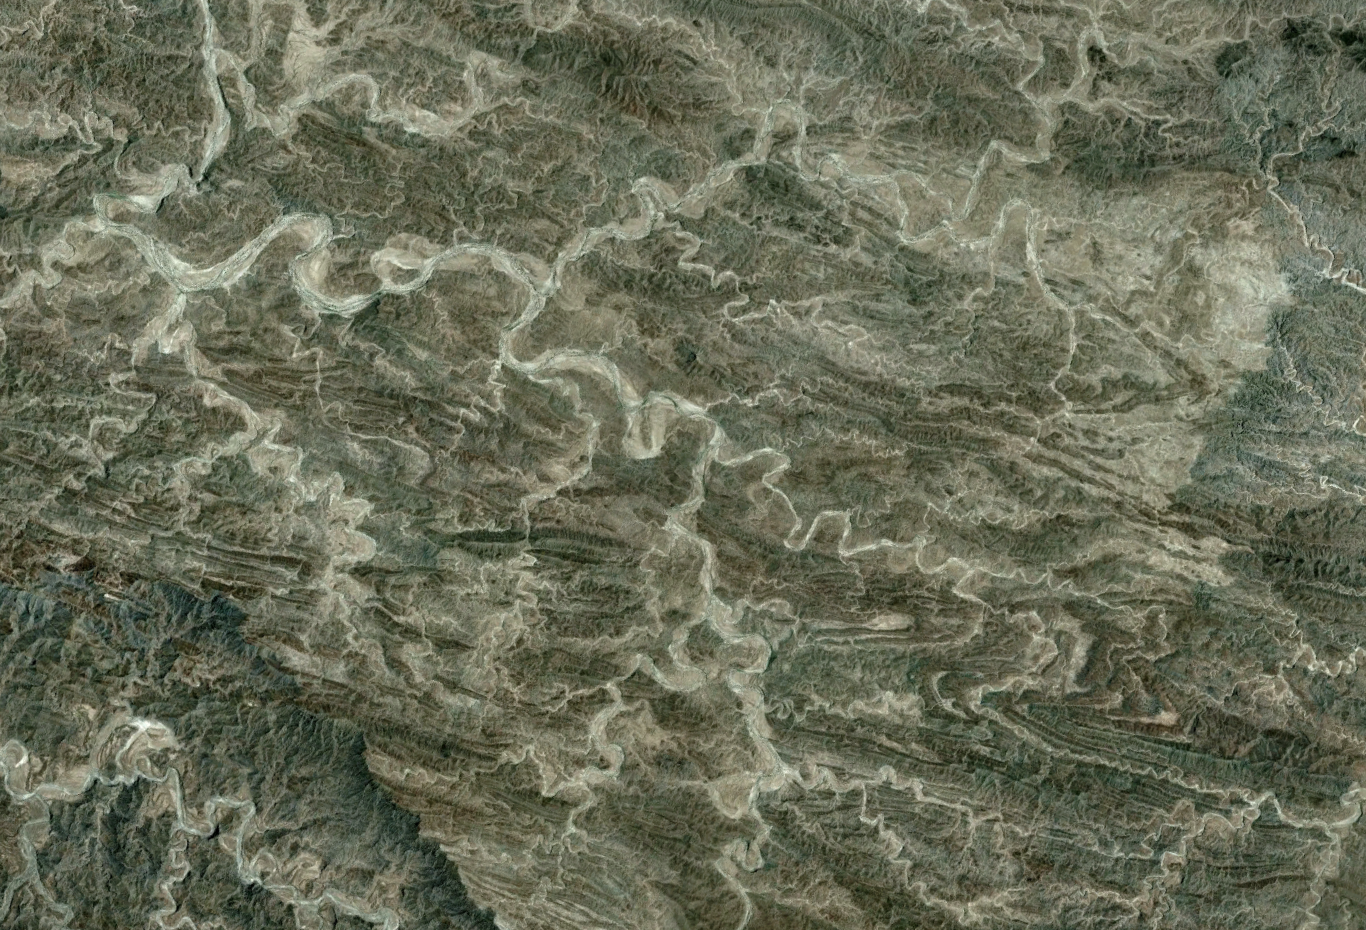 Really an awful lot of meandering and wanton ignorance of complex geological structure in this part of Pakistan. Yow. Browse around for more...really wild place.      http://goo.gl/maps/Wgck